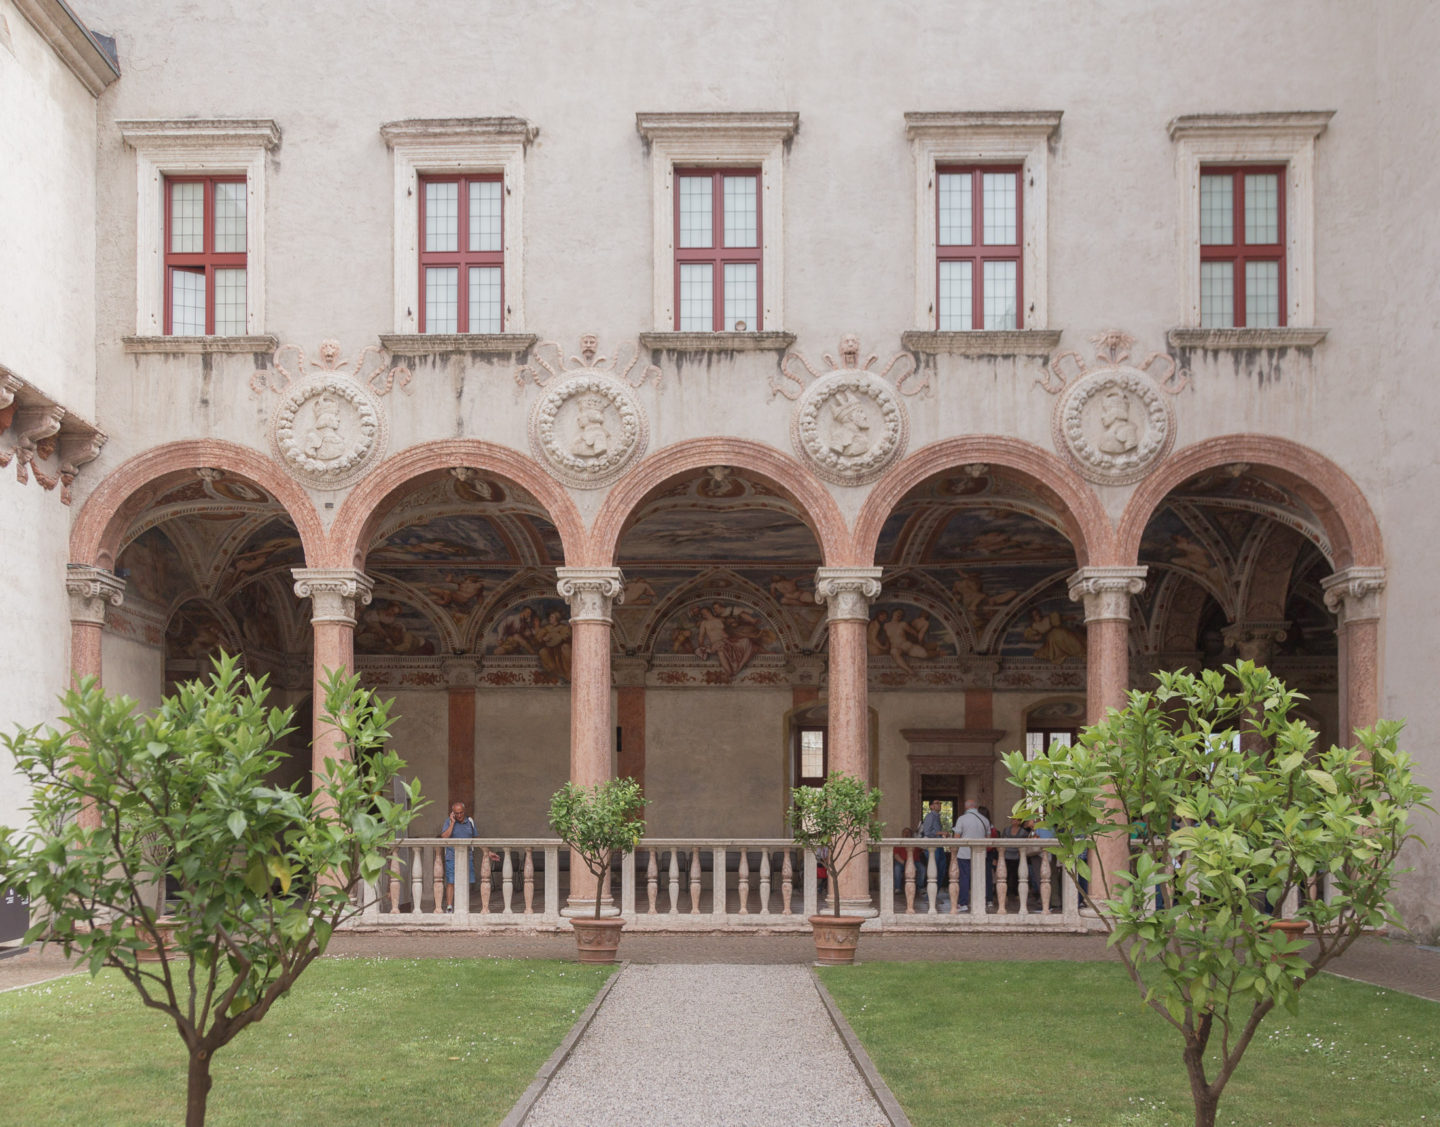 courtyard in castle -- 5 rounded arches with faded red boarders and 4 circle impressions on wall. Above them are 5 rectangle windows split into 4 panes, also a red boarder. In the fore front is a path and green grass with two small trees